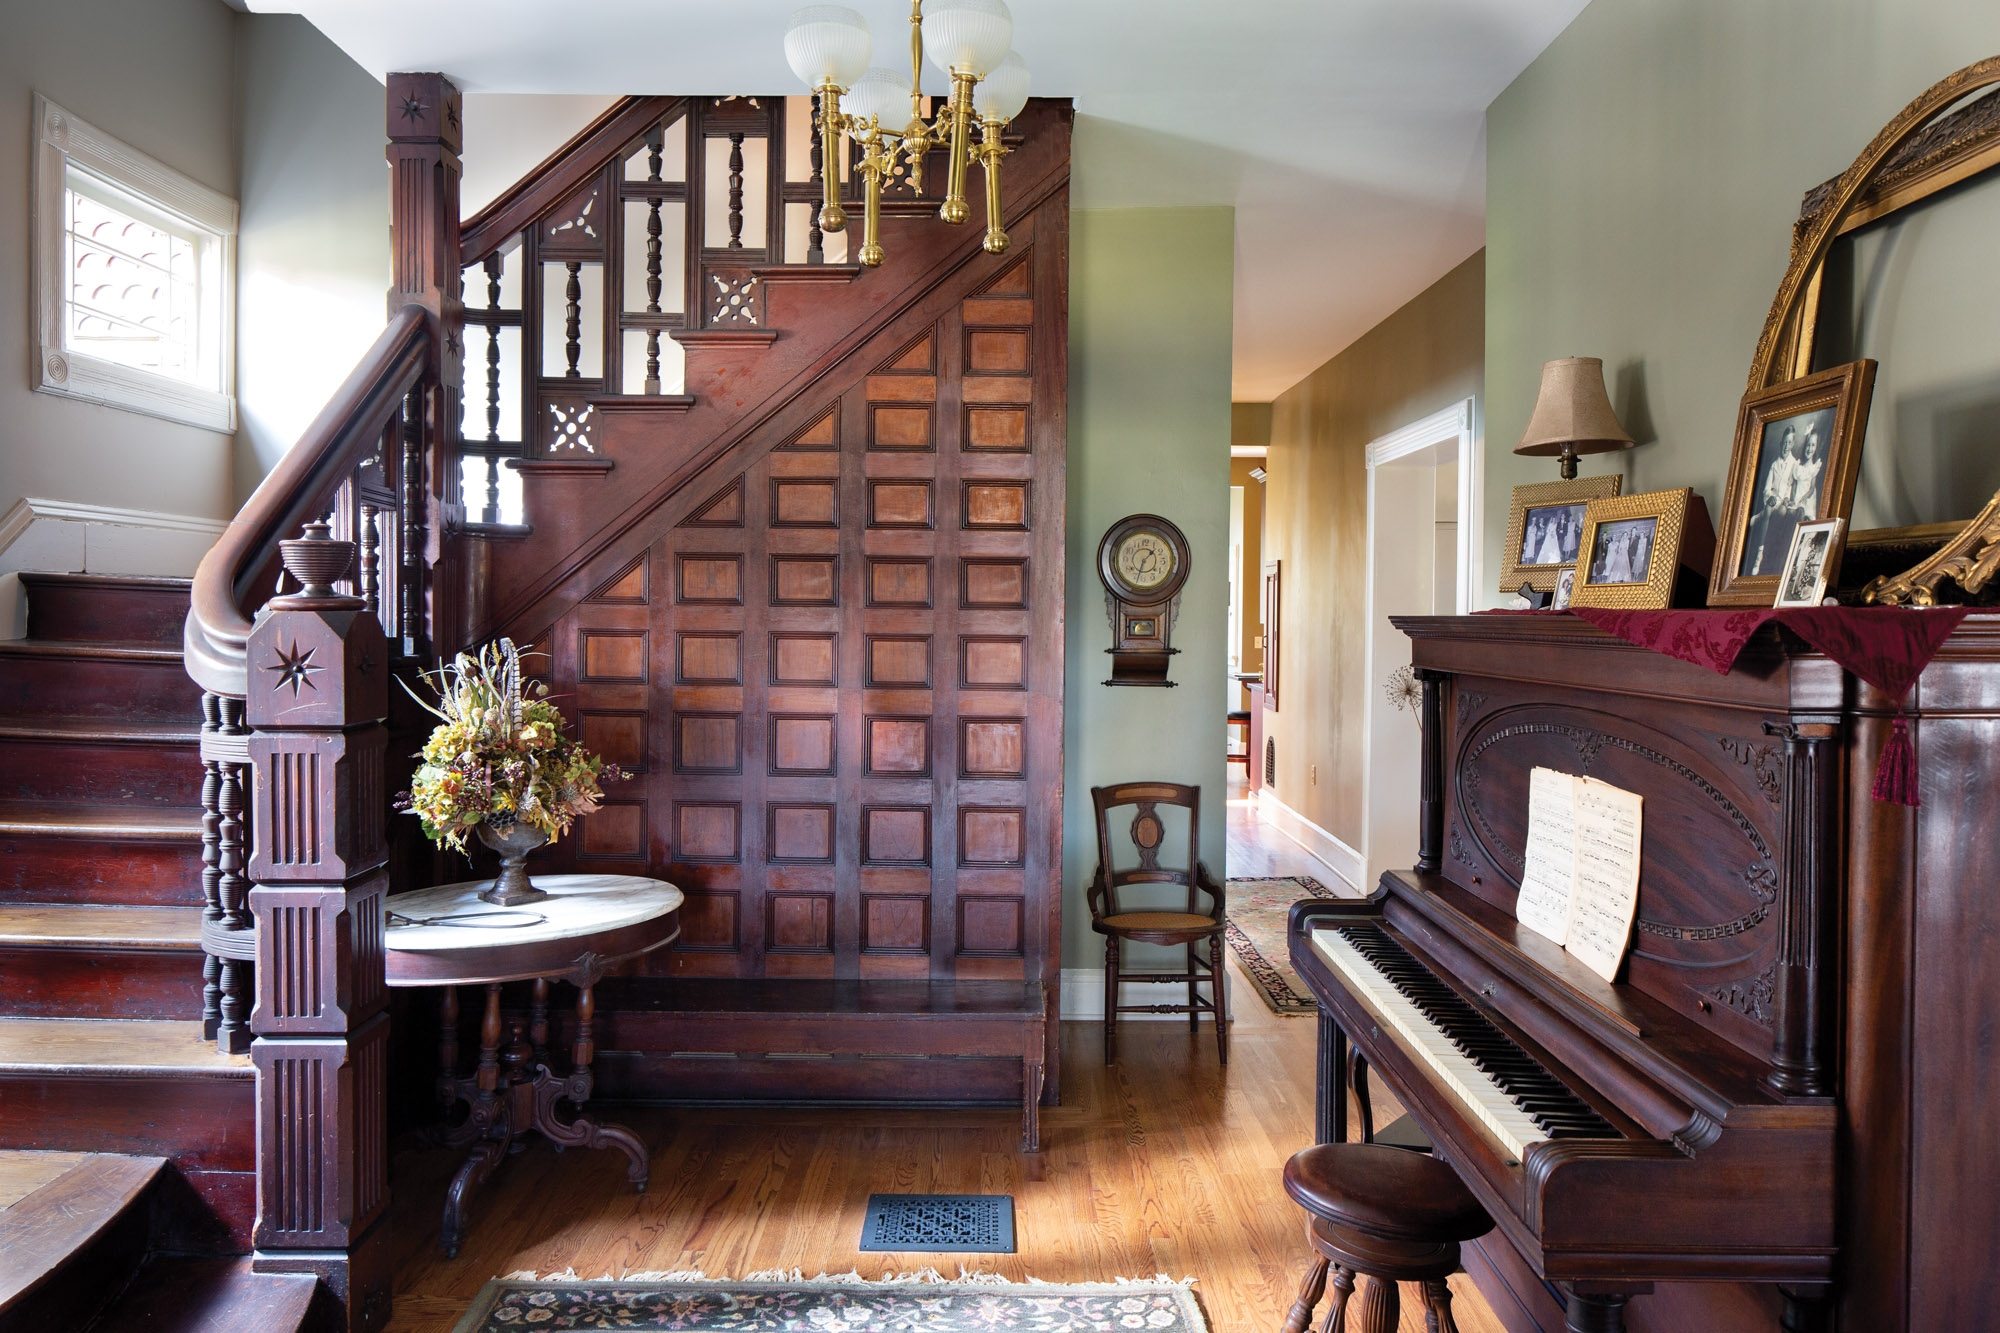 Queen Anne staircase